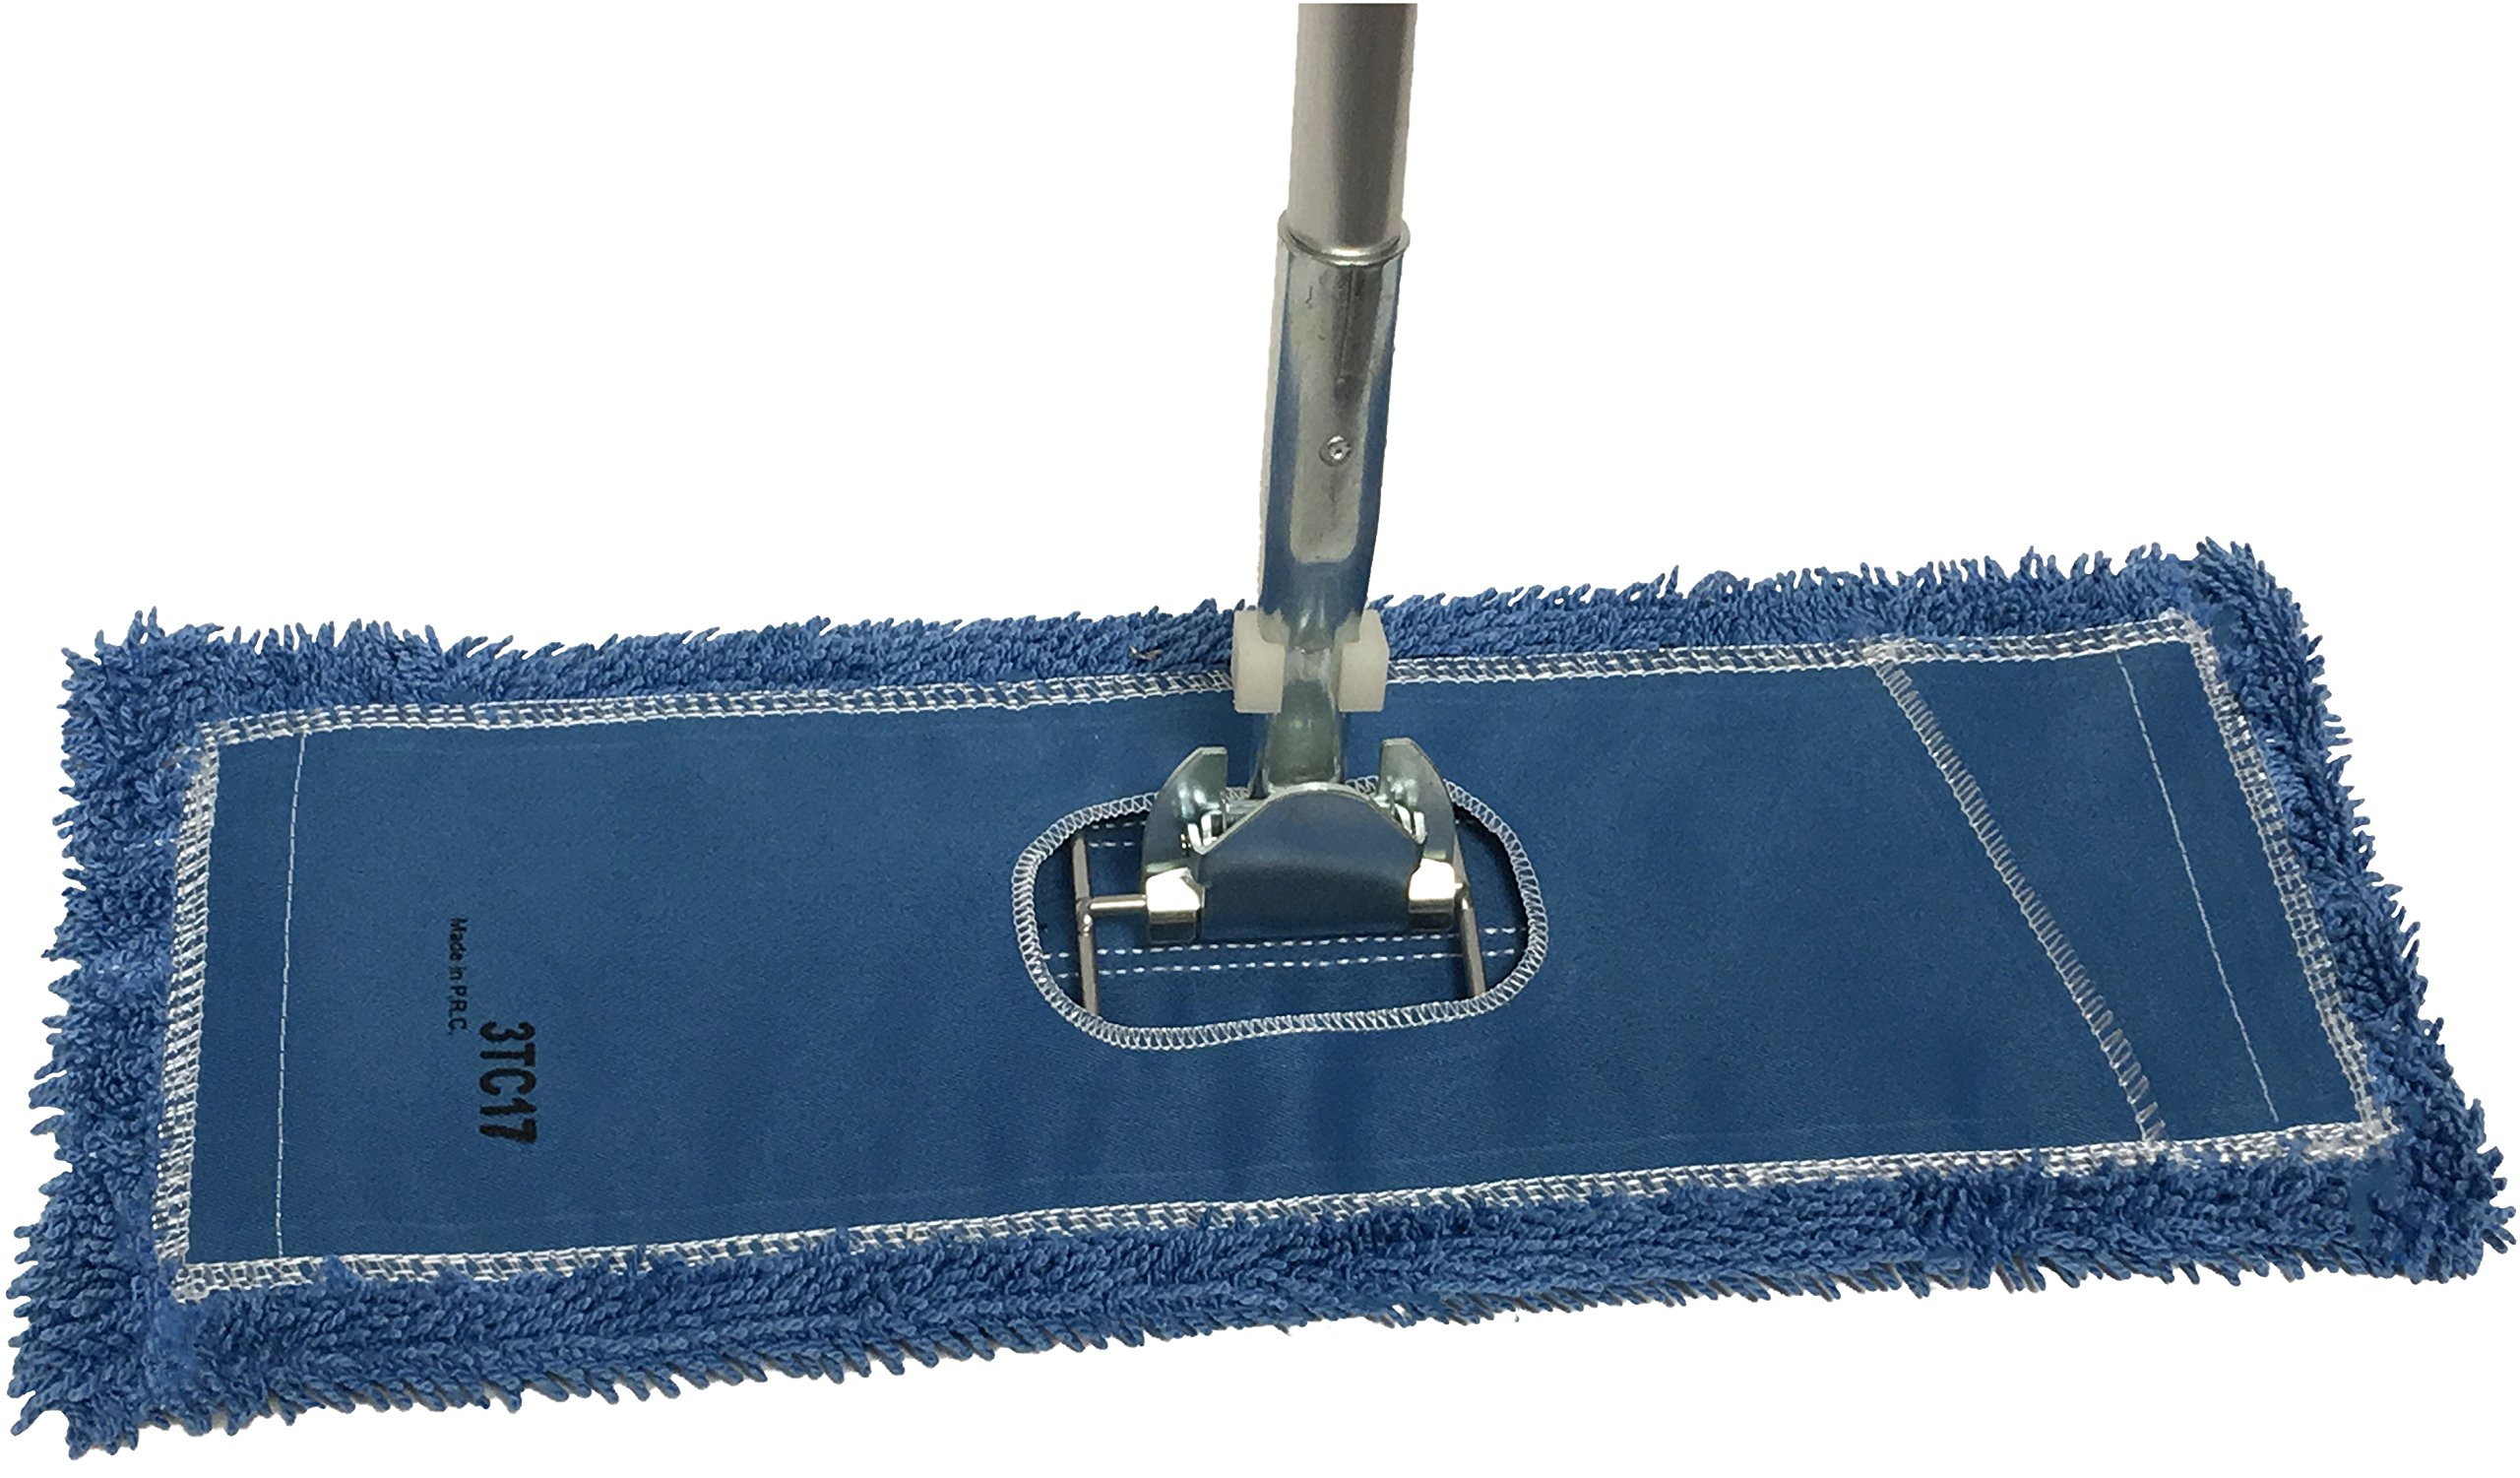 Dust Mop Kit 72'' : (1) 72'' Blue Microfiber Dust Mop, (1) 72'' Wire Dust Mop Frame & (1) Ergonomic Dust Mop Handle